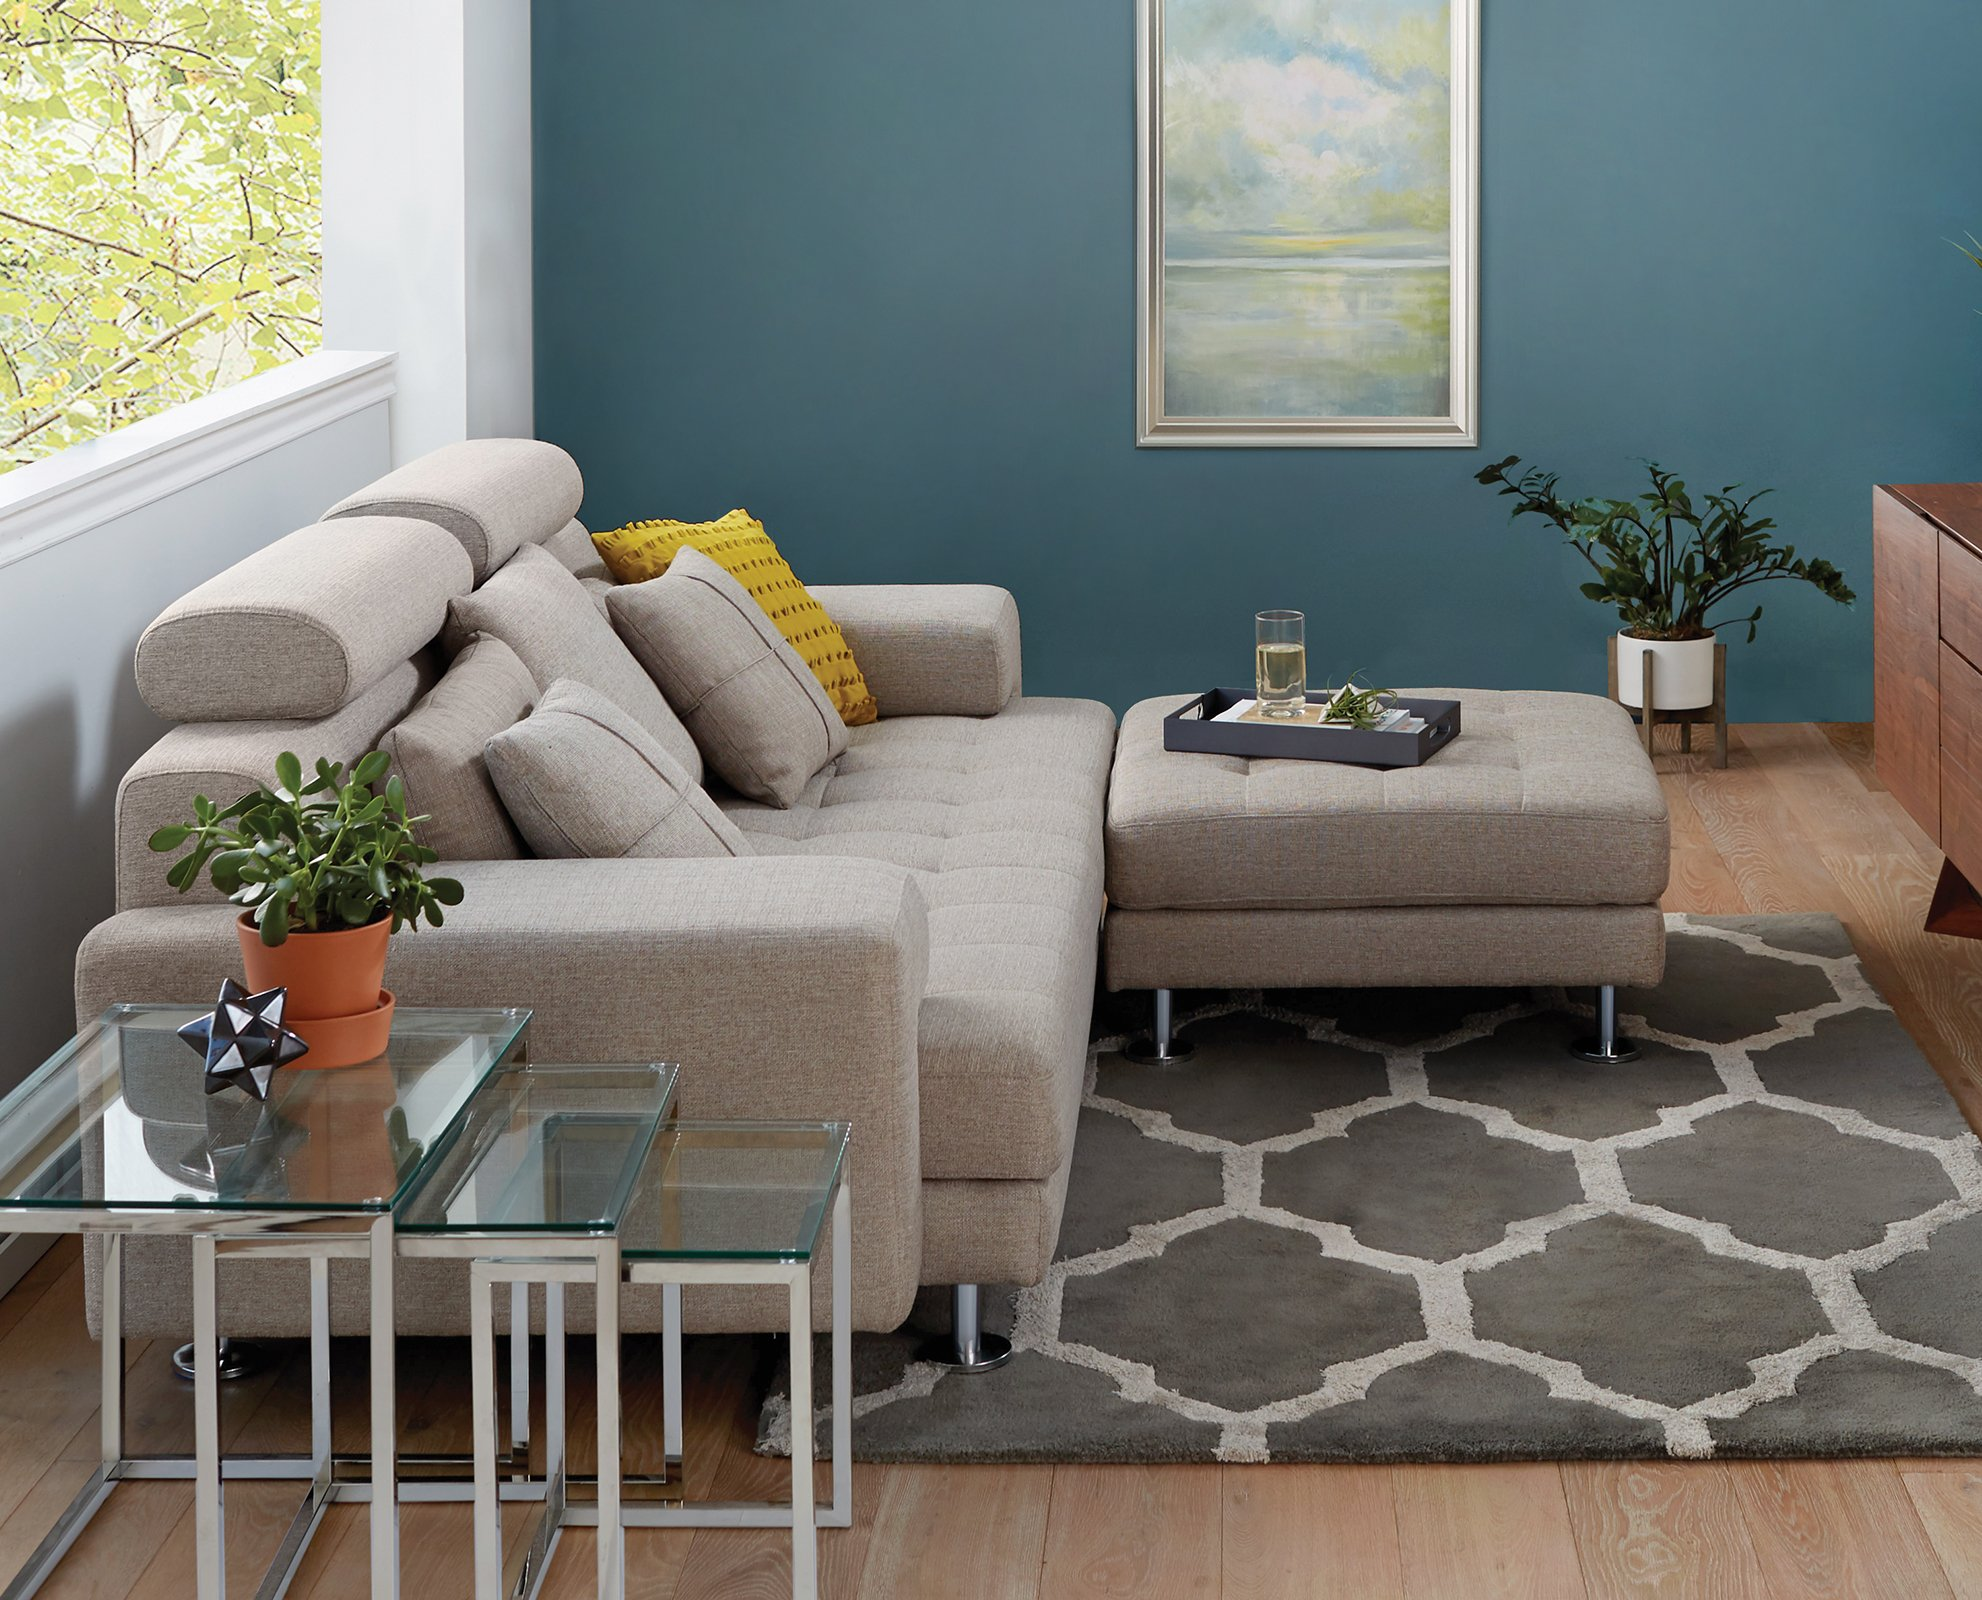 The cepella sofa offers all around comfort with a low profile and wide track arms chrome legs and detailed tufting create an overall modern look